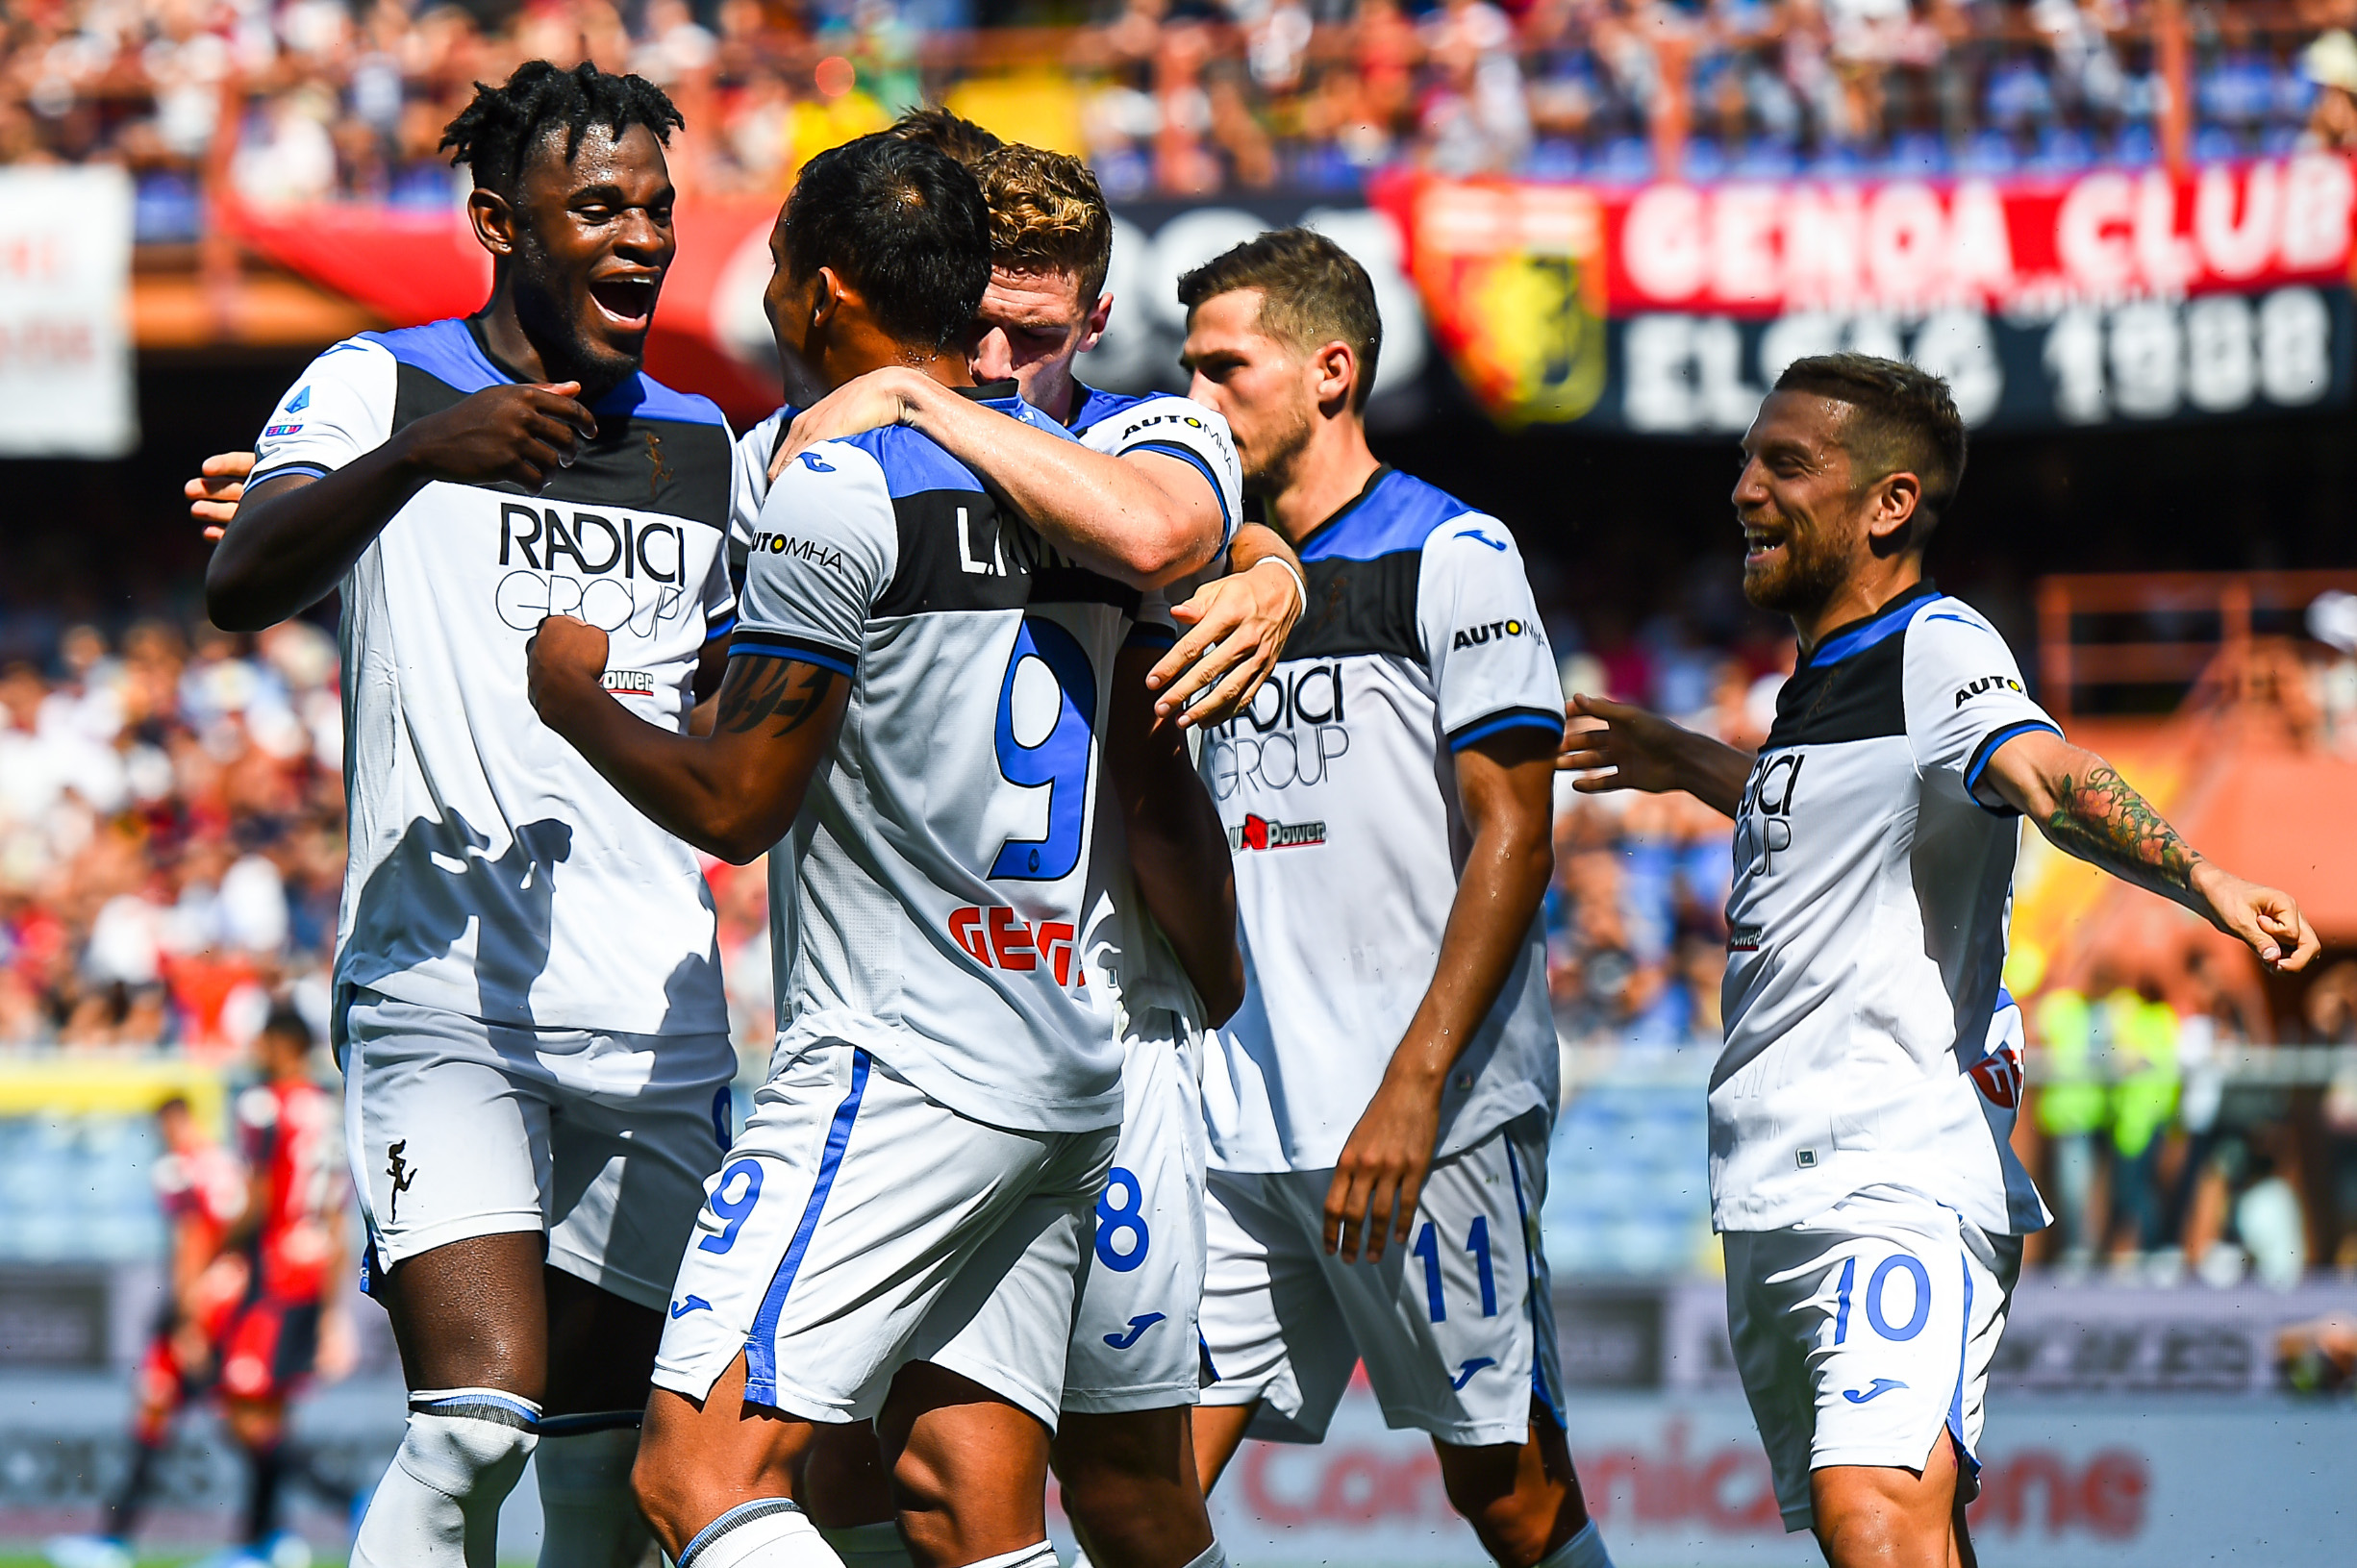 GENOA, ITALY - SEPTEMBER 15: Luis Muriel of Atalanta (2nd from left) celebrates with his team-mates Duvan Zapata, Robin Gosens, Remo Freuler and Alejandro Gomez after scoring a goal on a penalty kick during the Serie A match between Genoa CFC and Atalanta BC at Stadio Luigi Ferraris on September 15, 2019 in Genoa, Italy. (Photo by Paolo Rattini/Getty Images)